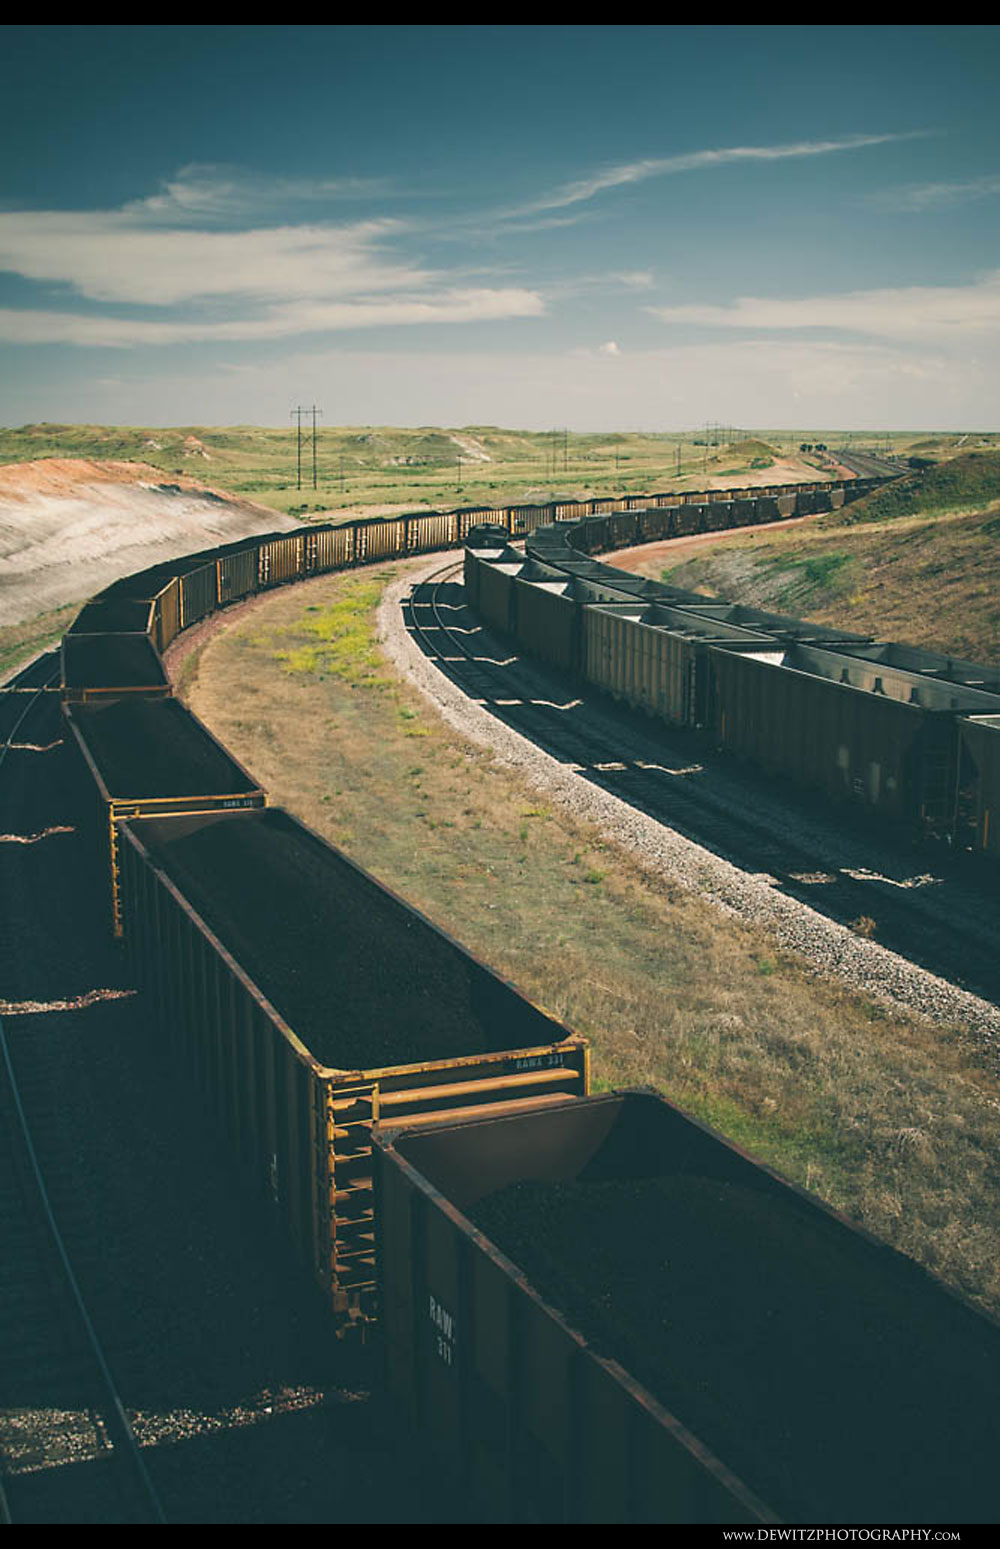 337Coal Trains Sit at Antelope Mine